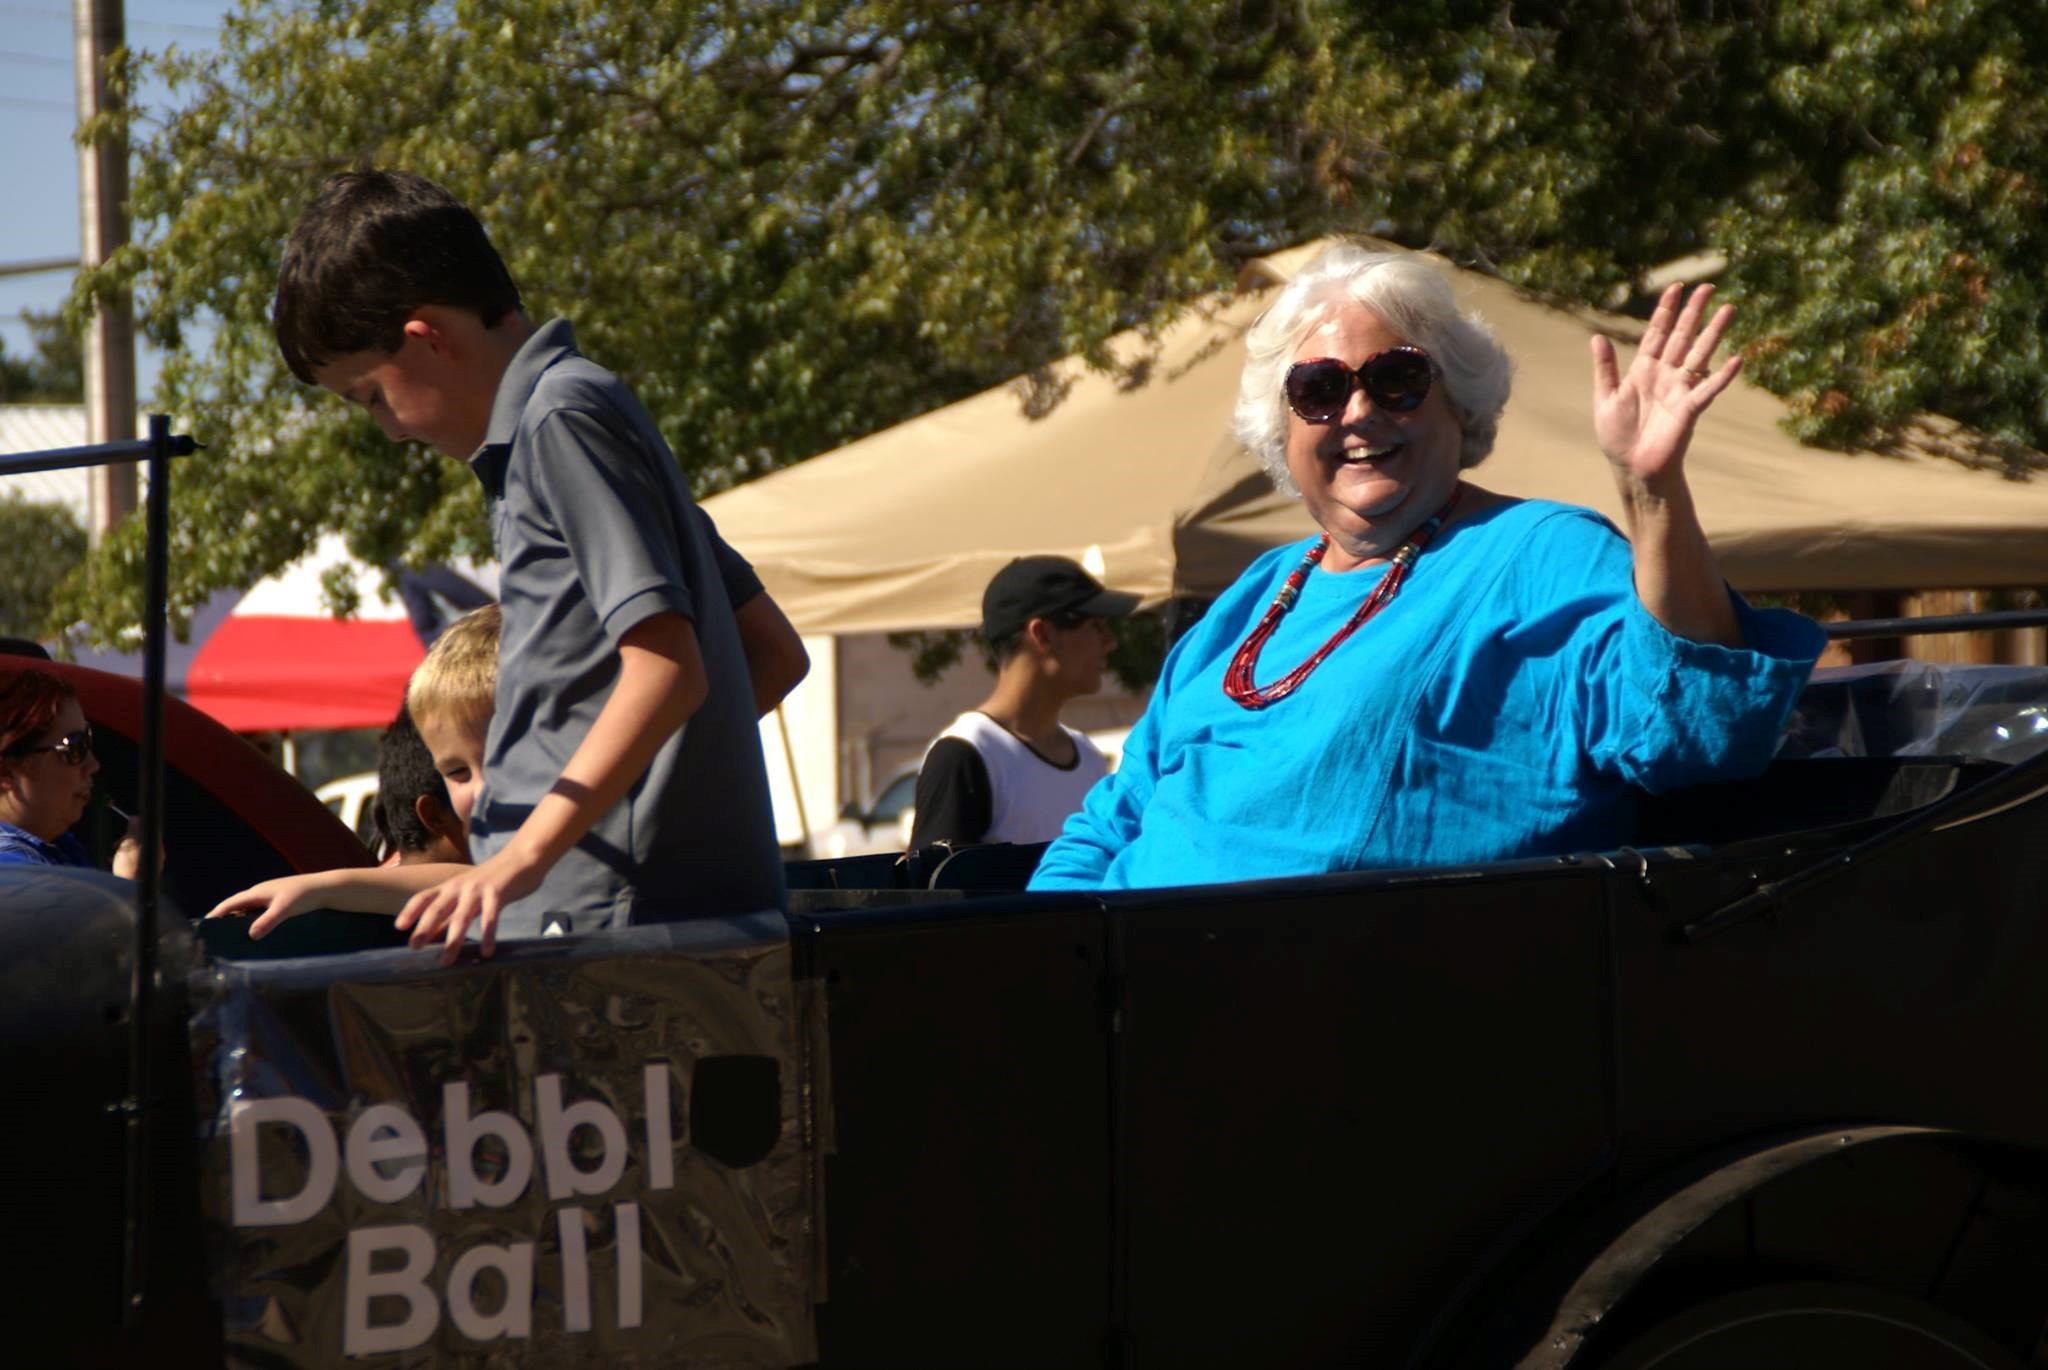 A photo of Debbie Ball, waving and cheering from her car.